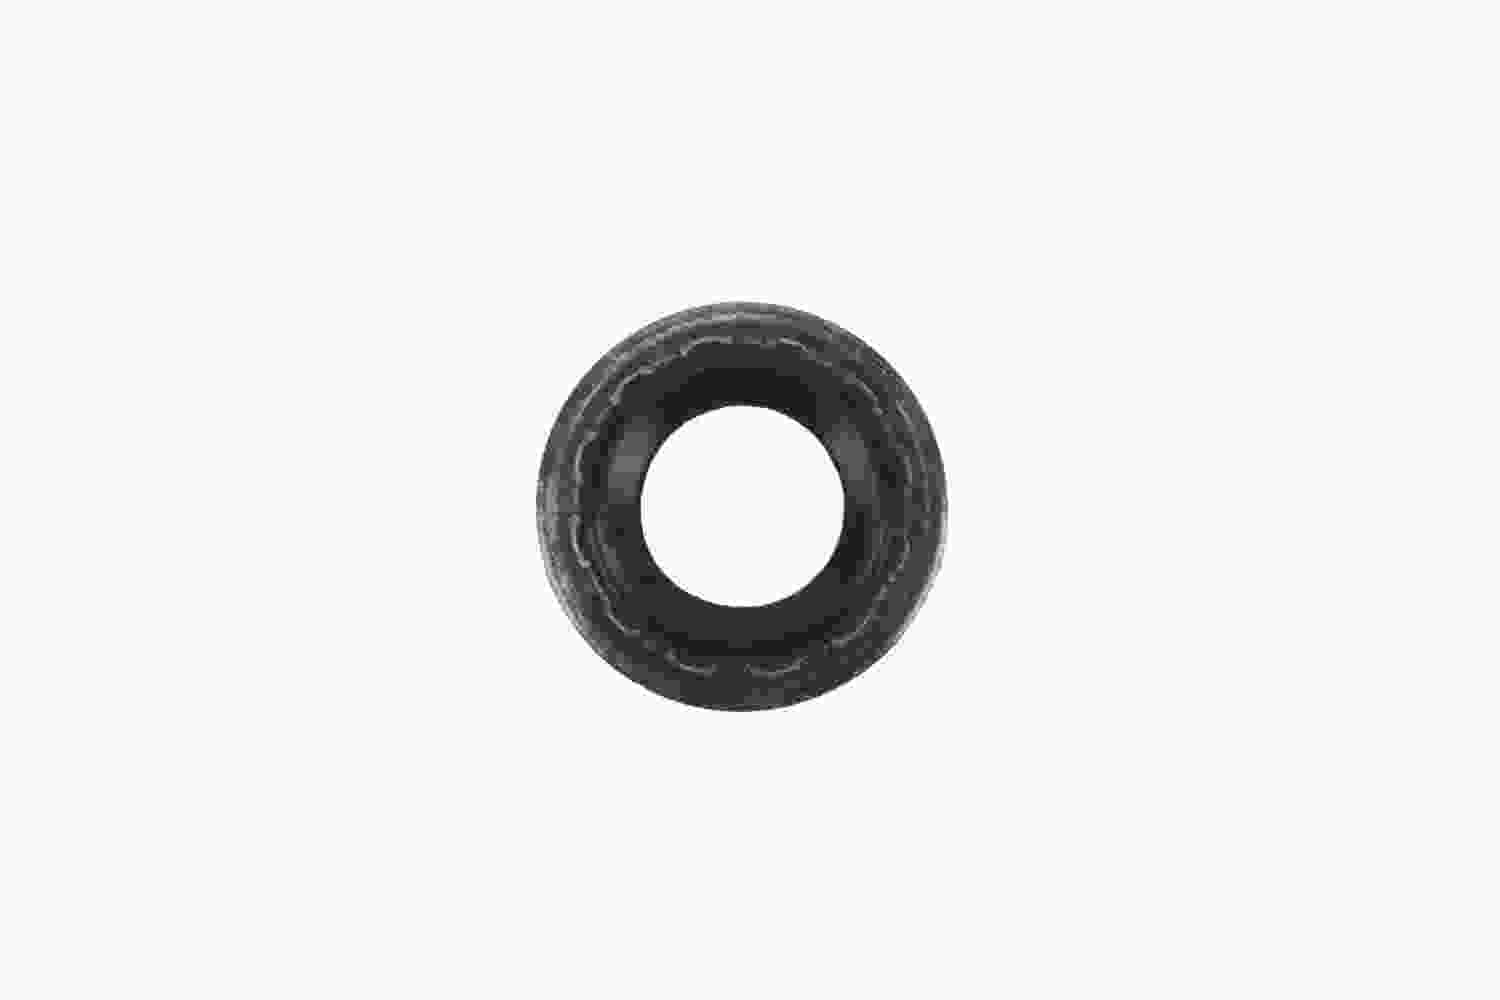 ACDELCO GM ORIGINAL EQUIPMENT - A/C Evaporator Tube O-Ring (Inlet) - DCB 15-31054